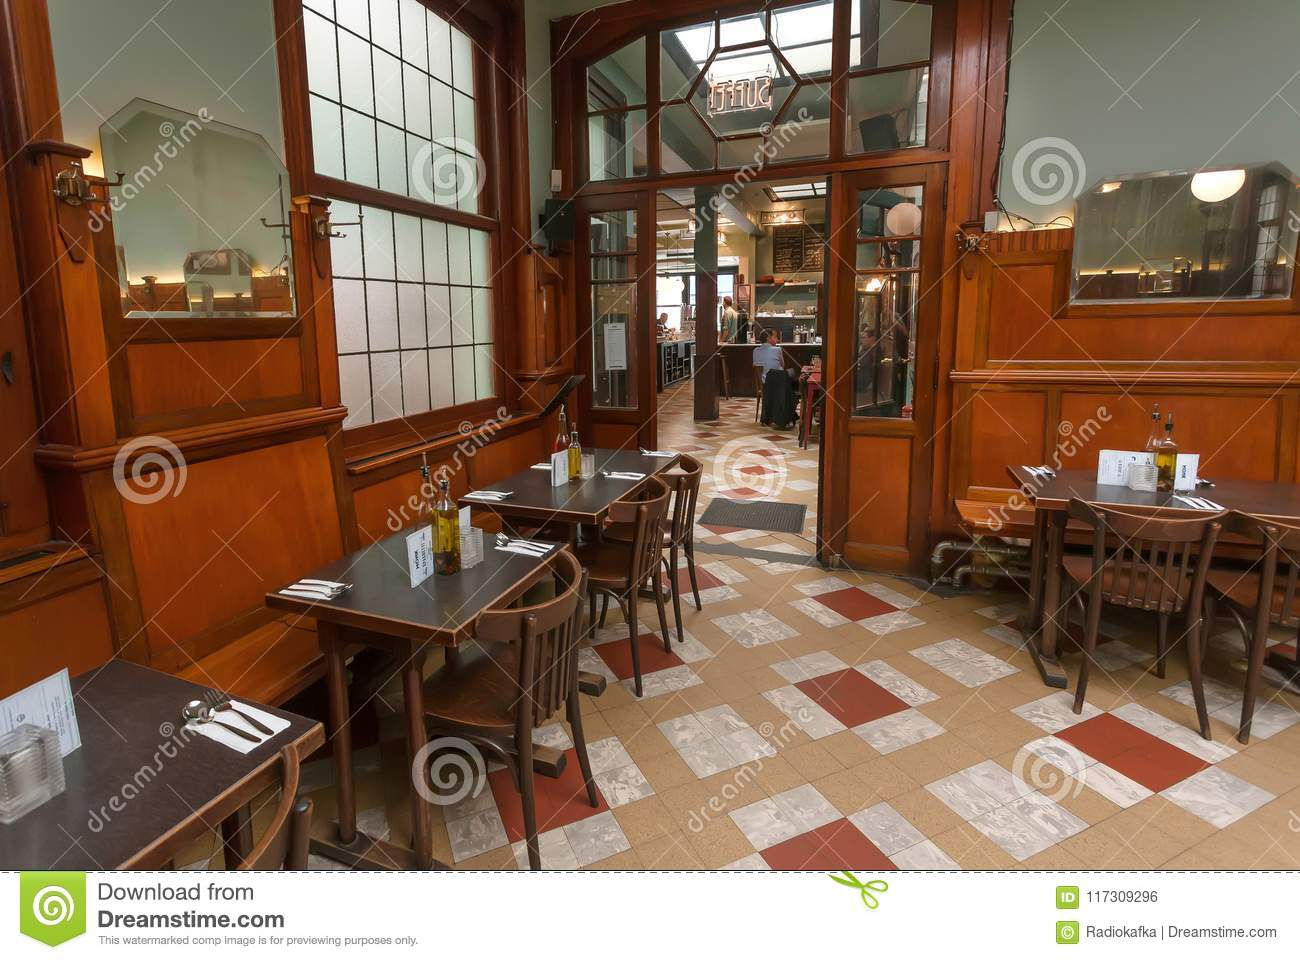 Interior Of Historical Artistic Cafe With Antique Furniture Windows Tables In Old Fashion Style Editorial Photo Image Of Drink Apartment 117309296